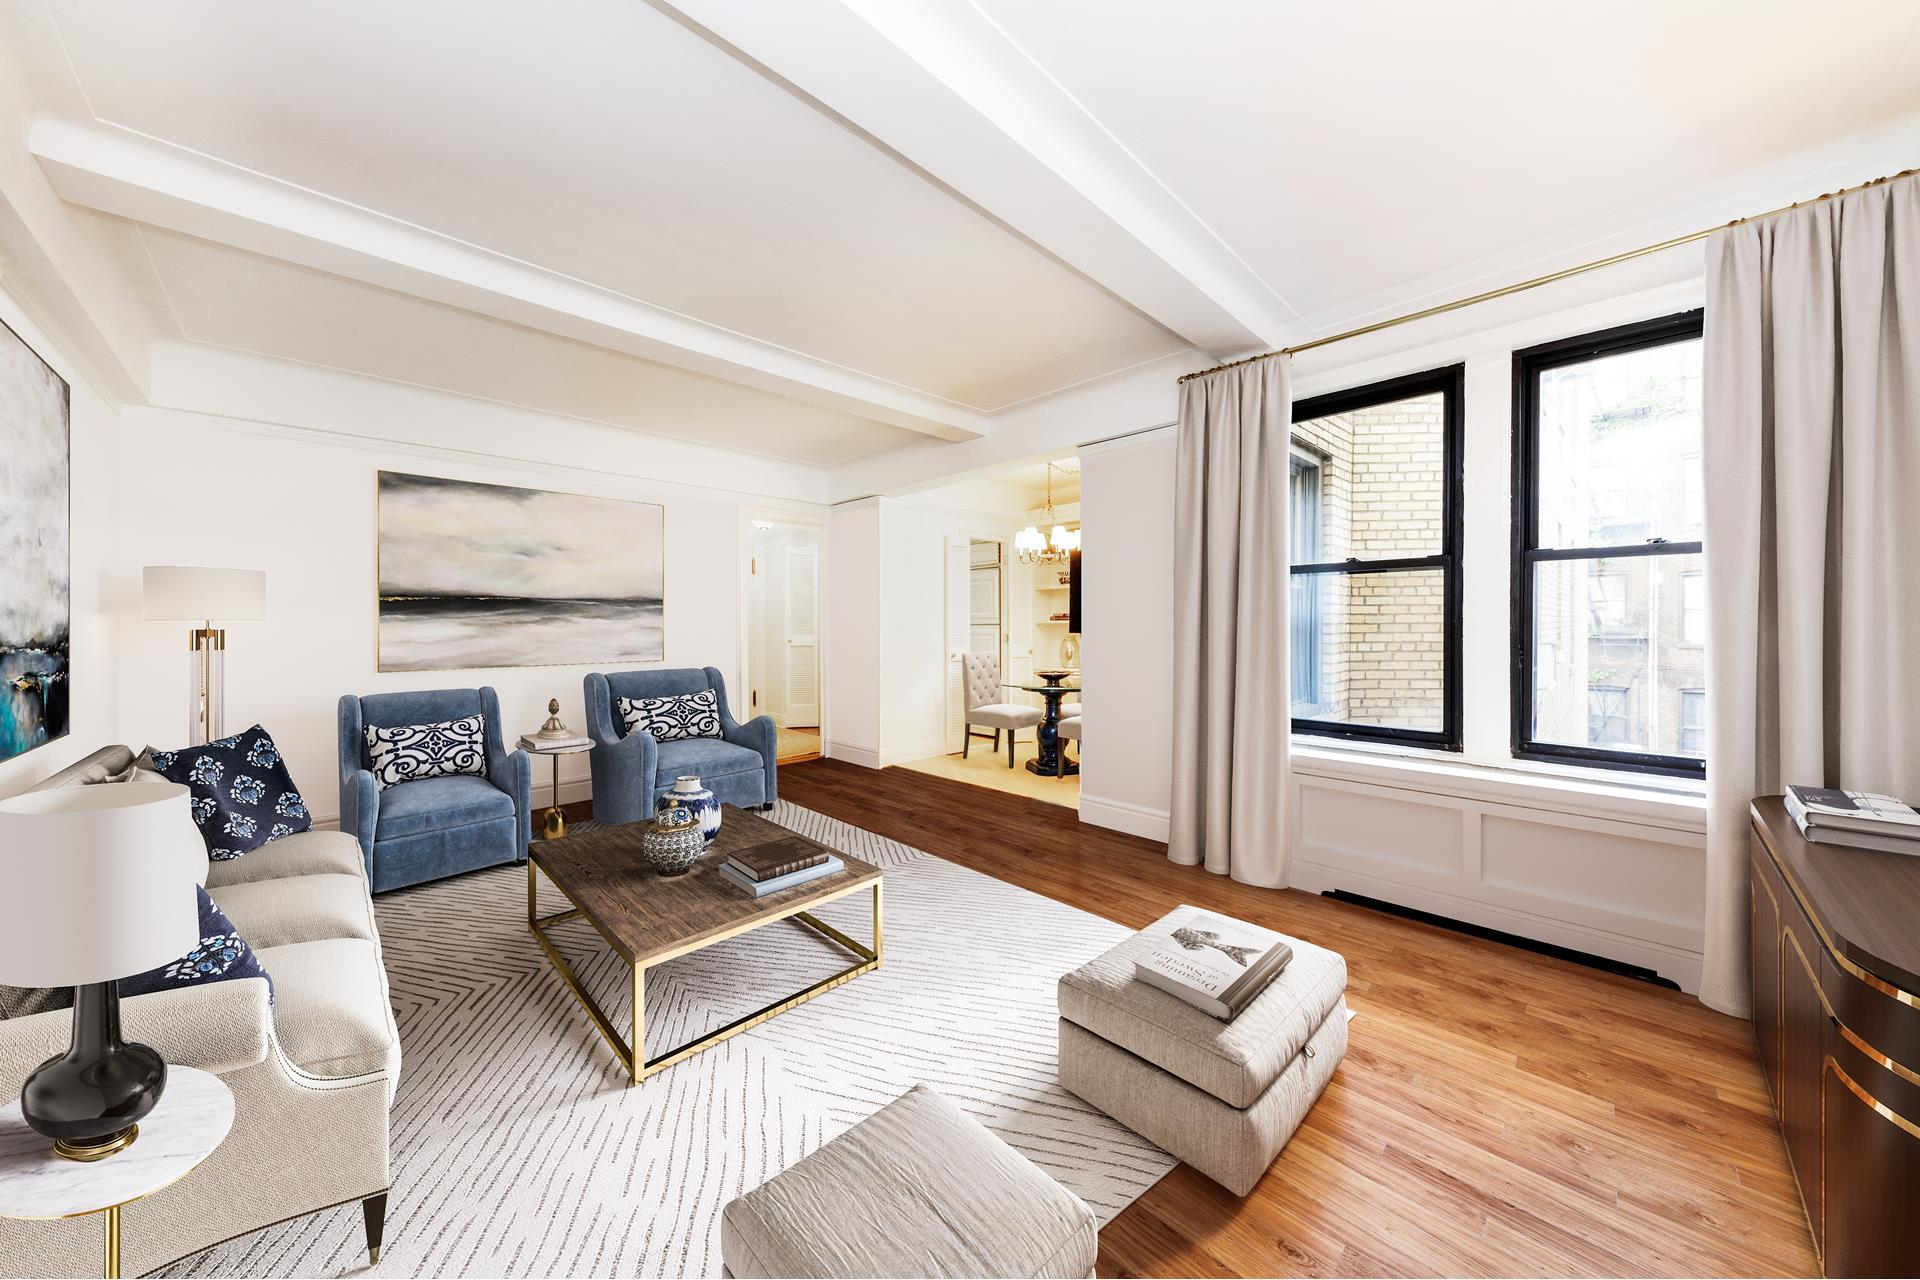 308 OWNERS CORP., 308 East 79th Street, 2C - Upper East Side, New York